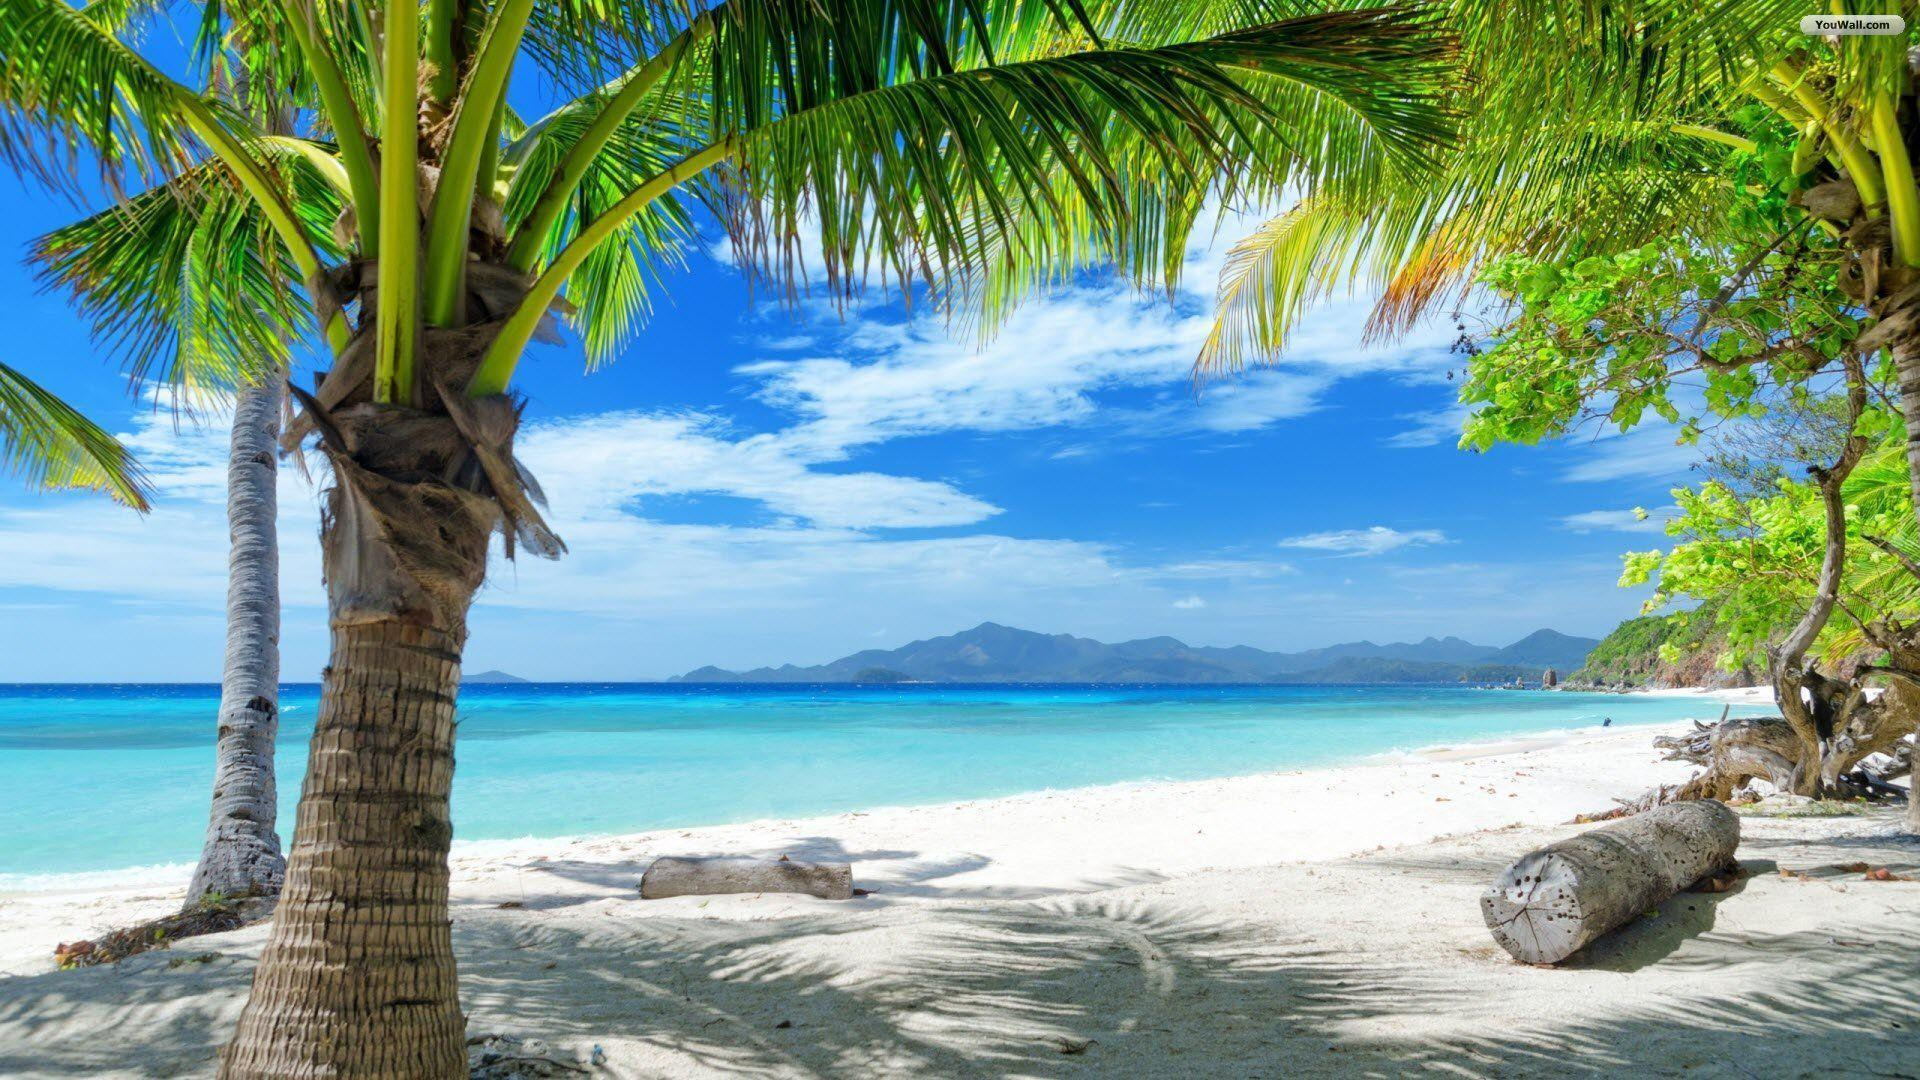 Beach Paradise Wallpapers 1920x1080